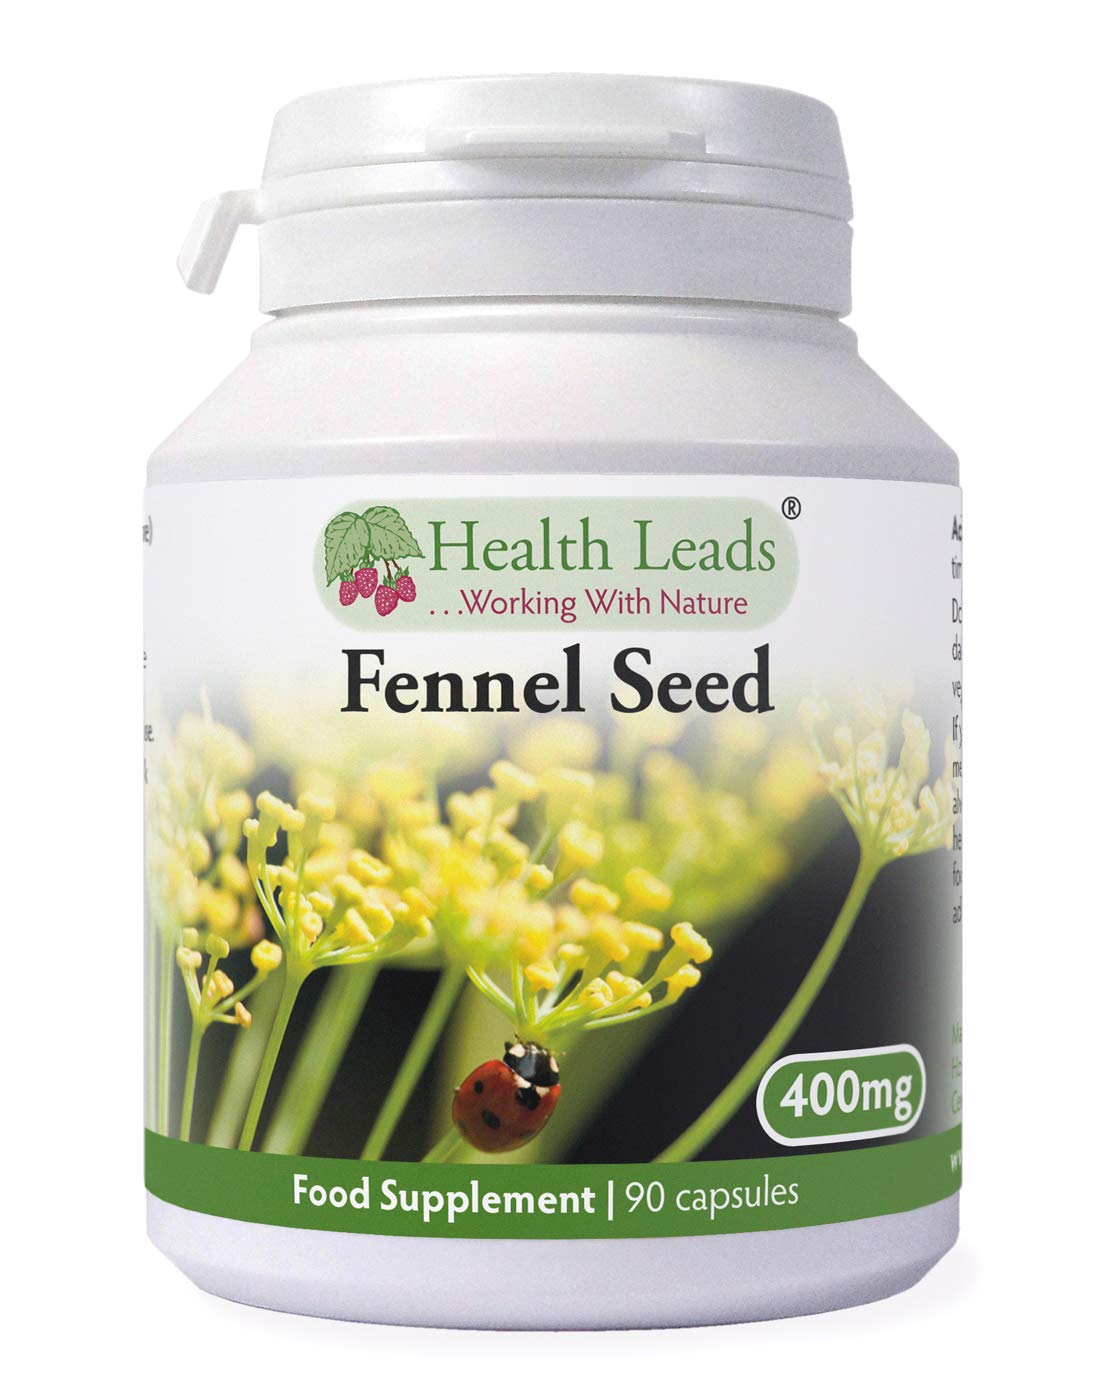 Fennel Seed 400mg x 90 Capsules (100% Additive Free Supplements)